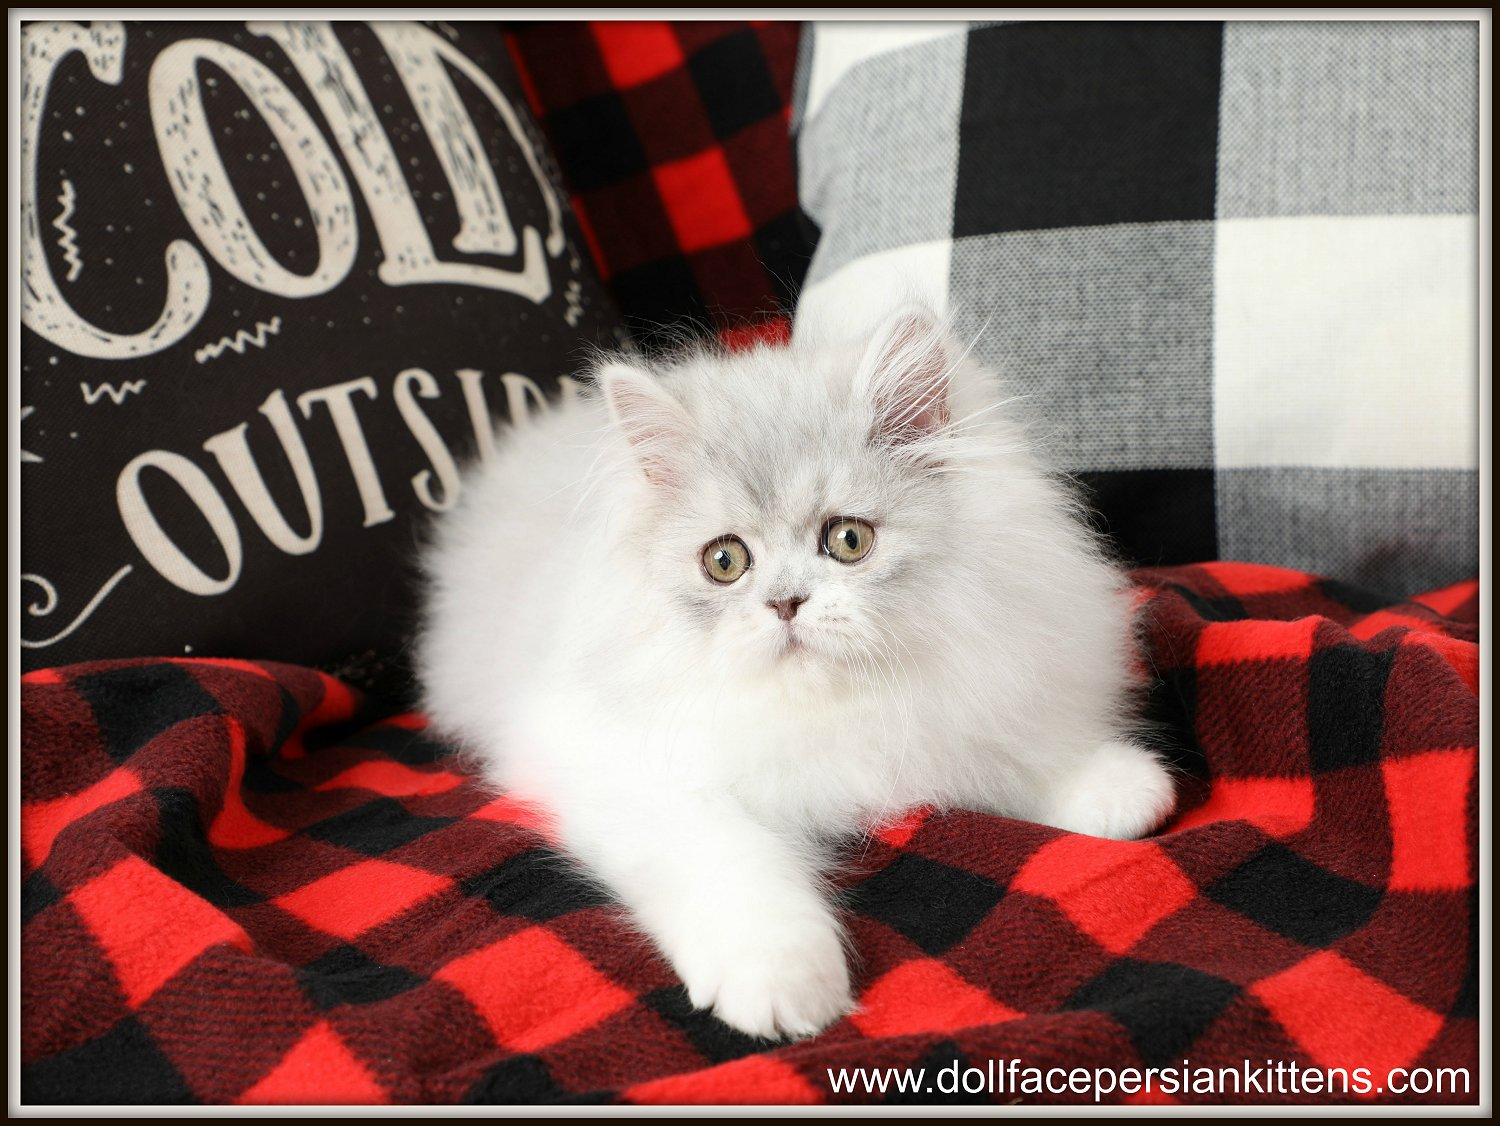 Doll Face Persian Kittens Lover Boy - Silver and White Persian Kitten